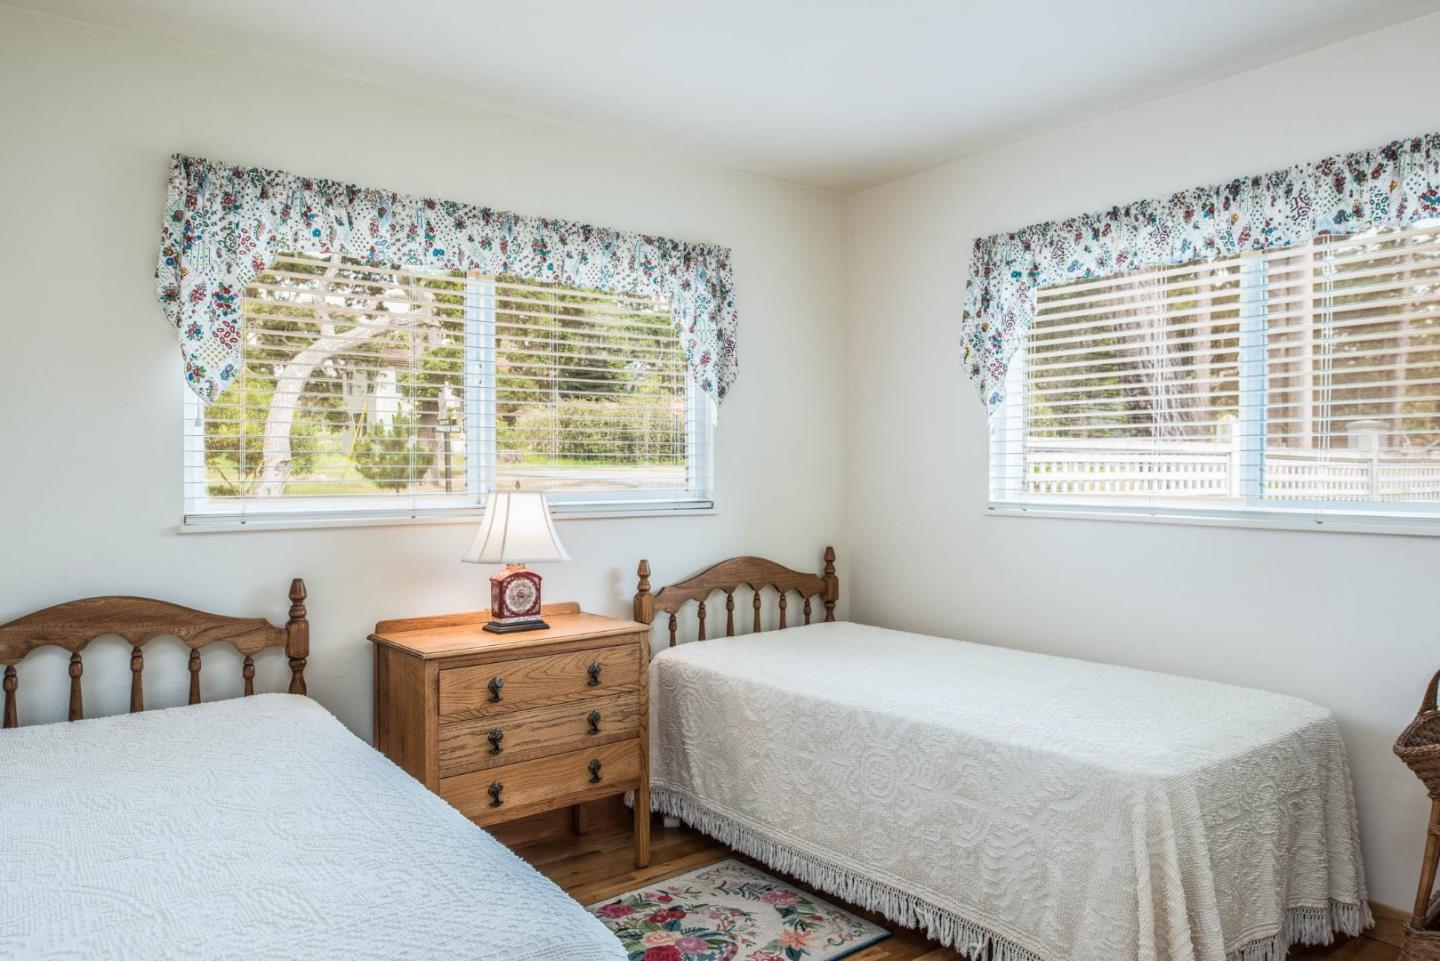 Additional photo for property listing at 994 Pioneer Rd  PEBBLE BEACH, CALIFORNIA 93953